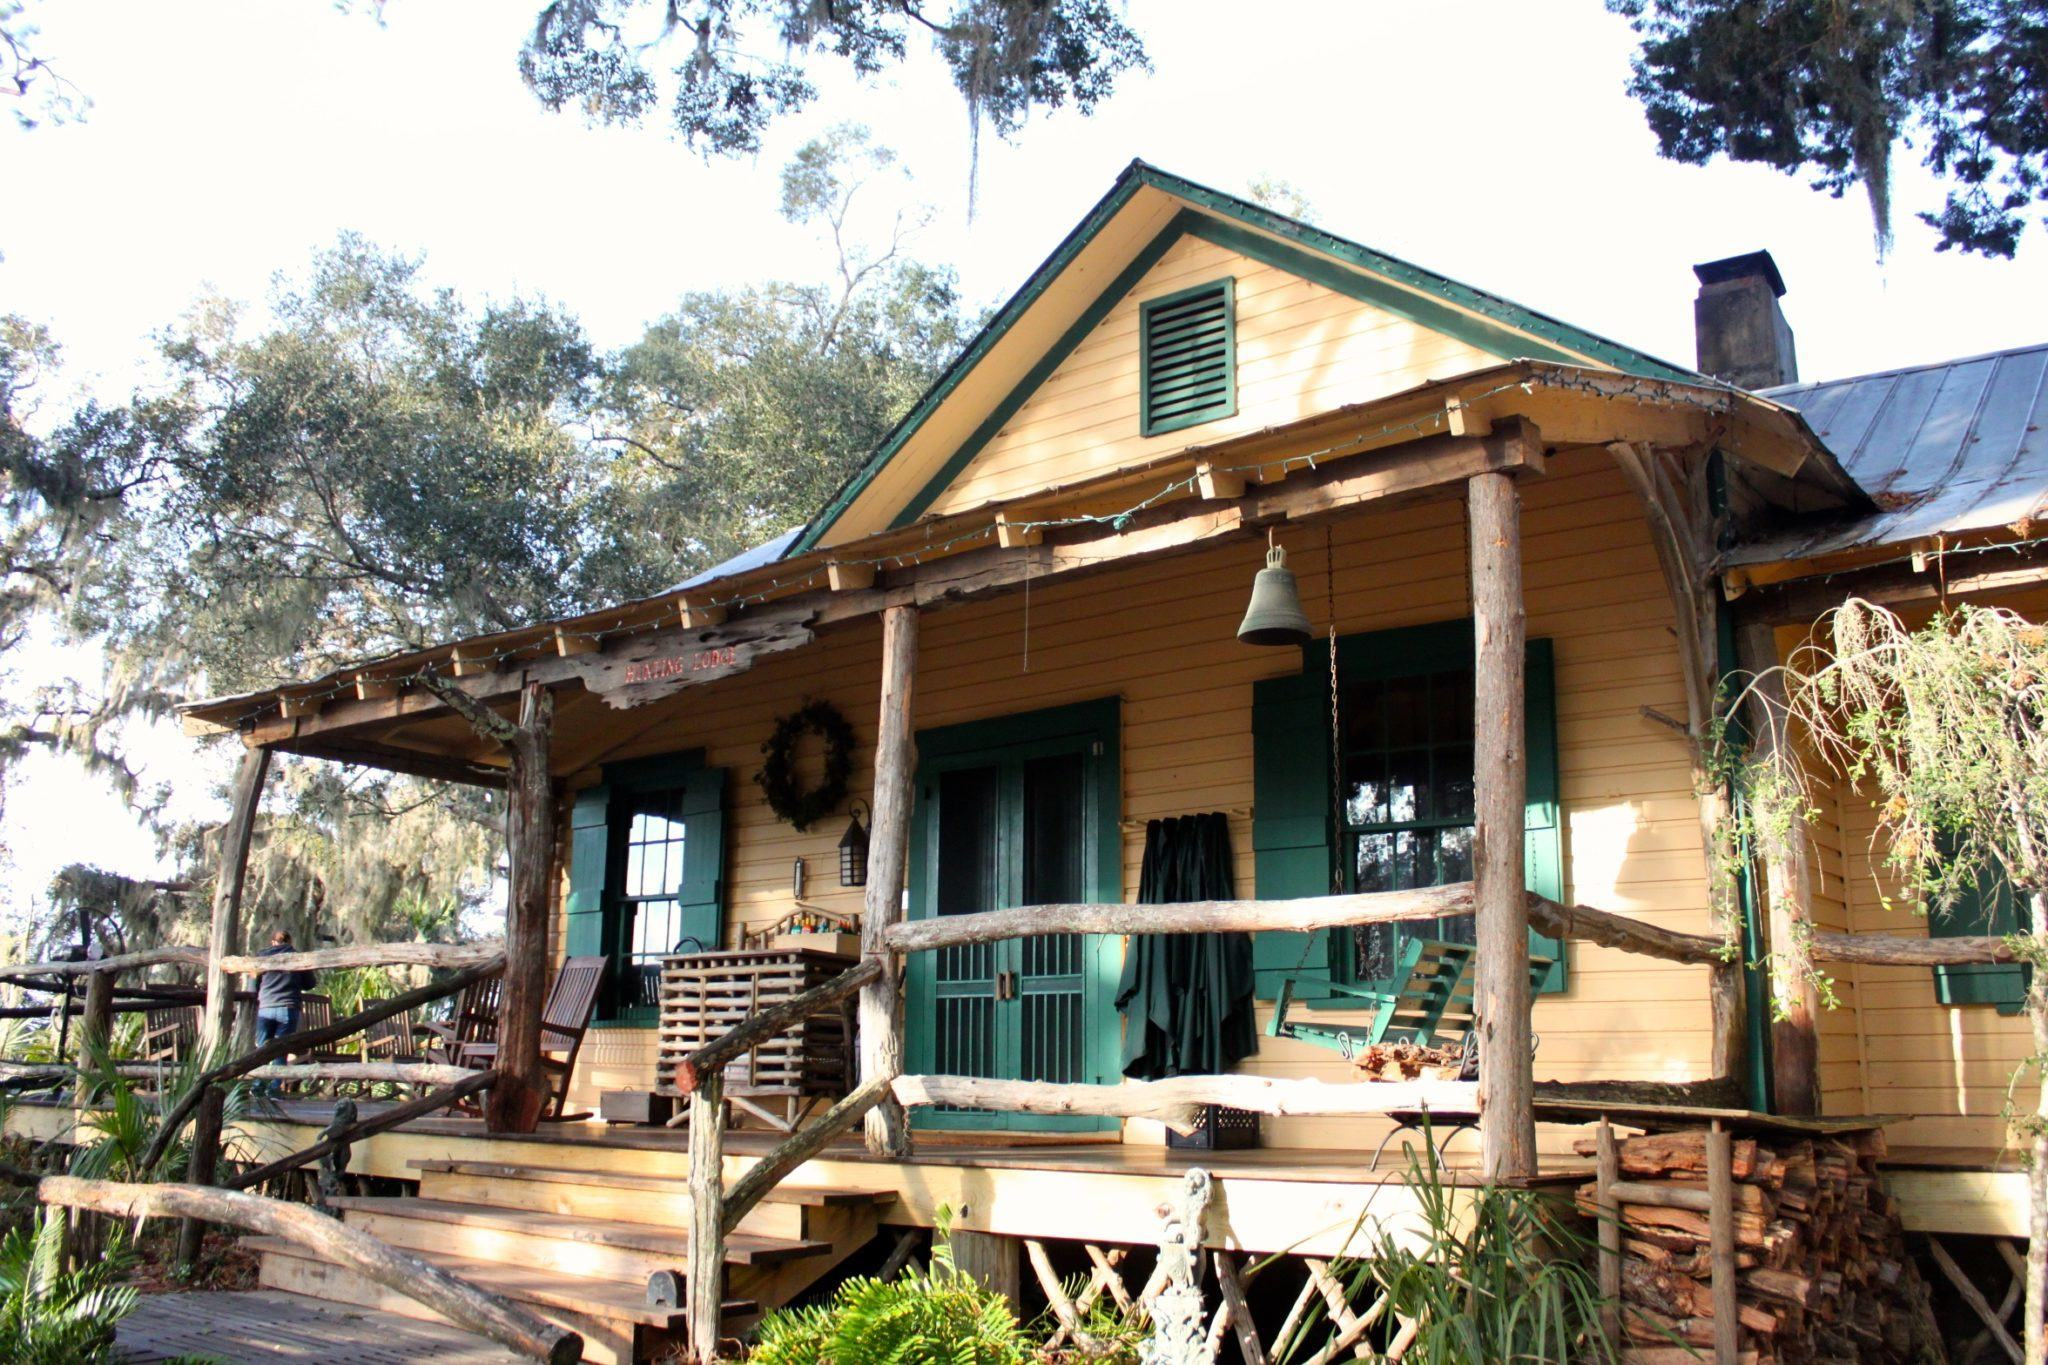 The Lodge On Little St Simons Island >> Southern Stays: The Lodge on Little St. Simon's Island - This Is My South